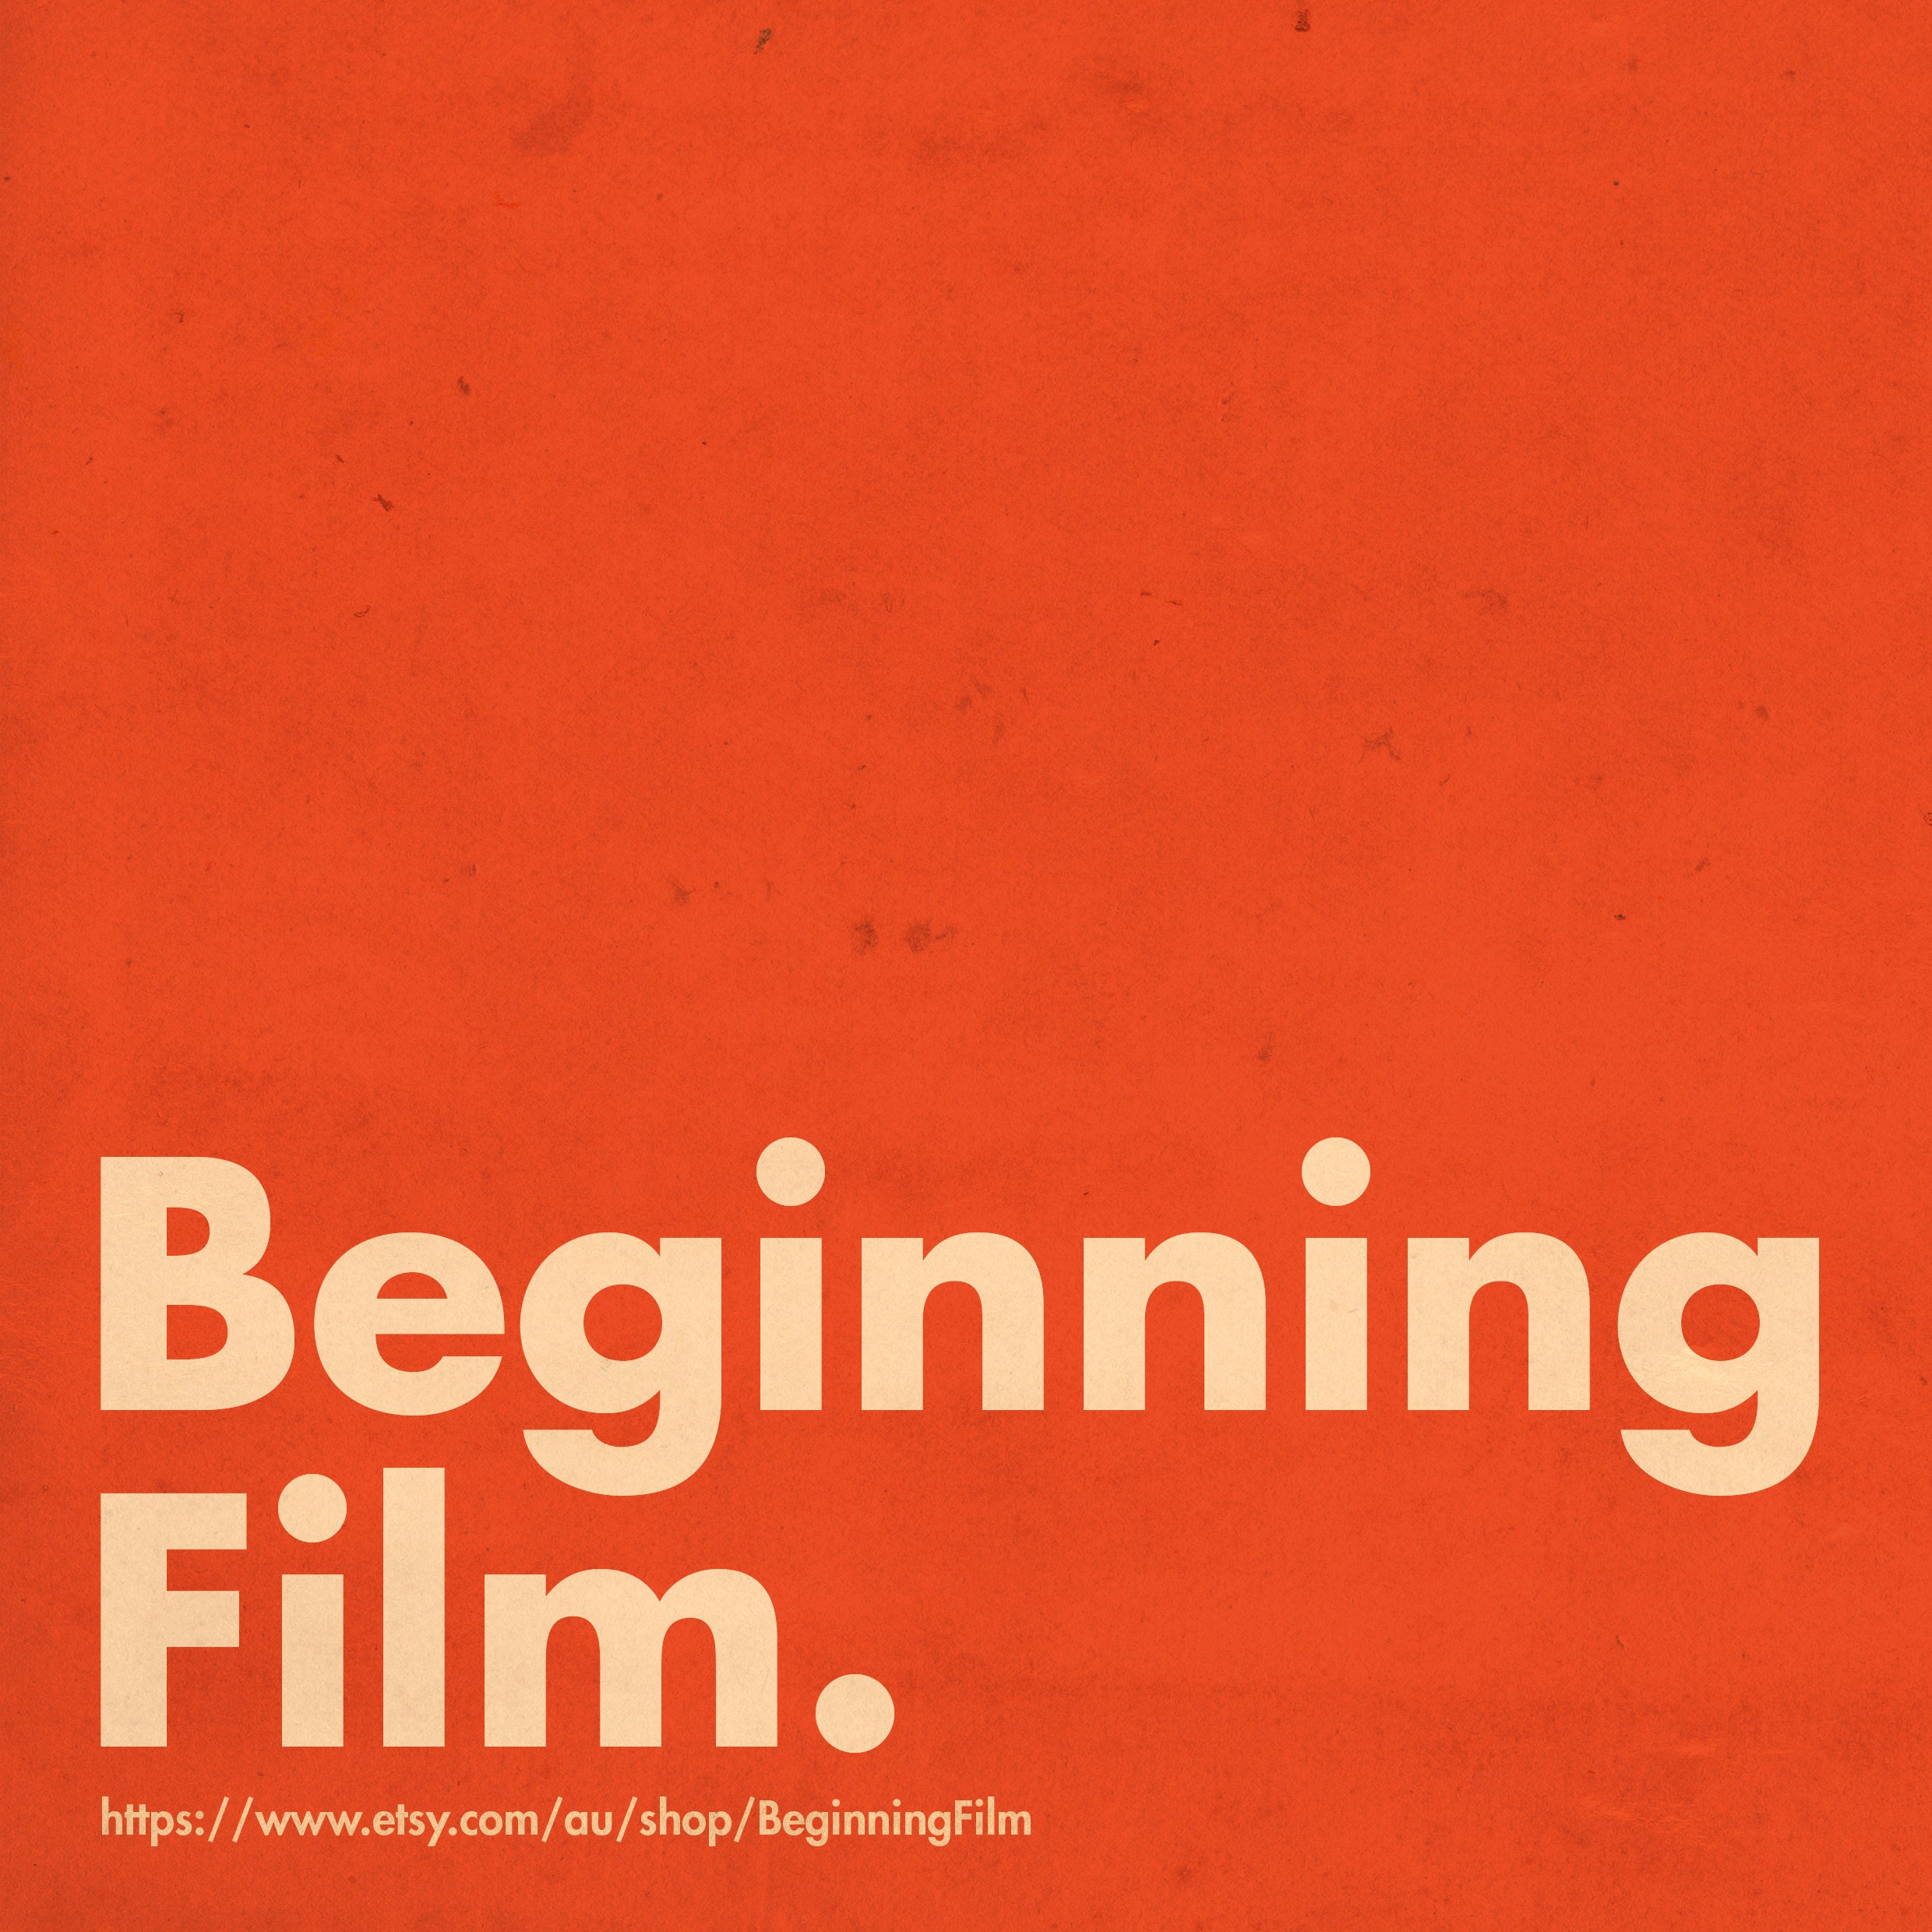 We have relocated to WWW.BEGINNINGFILM.SHOP by BeginningFilm